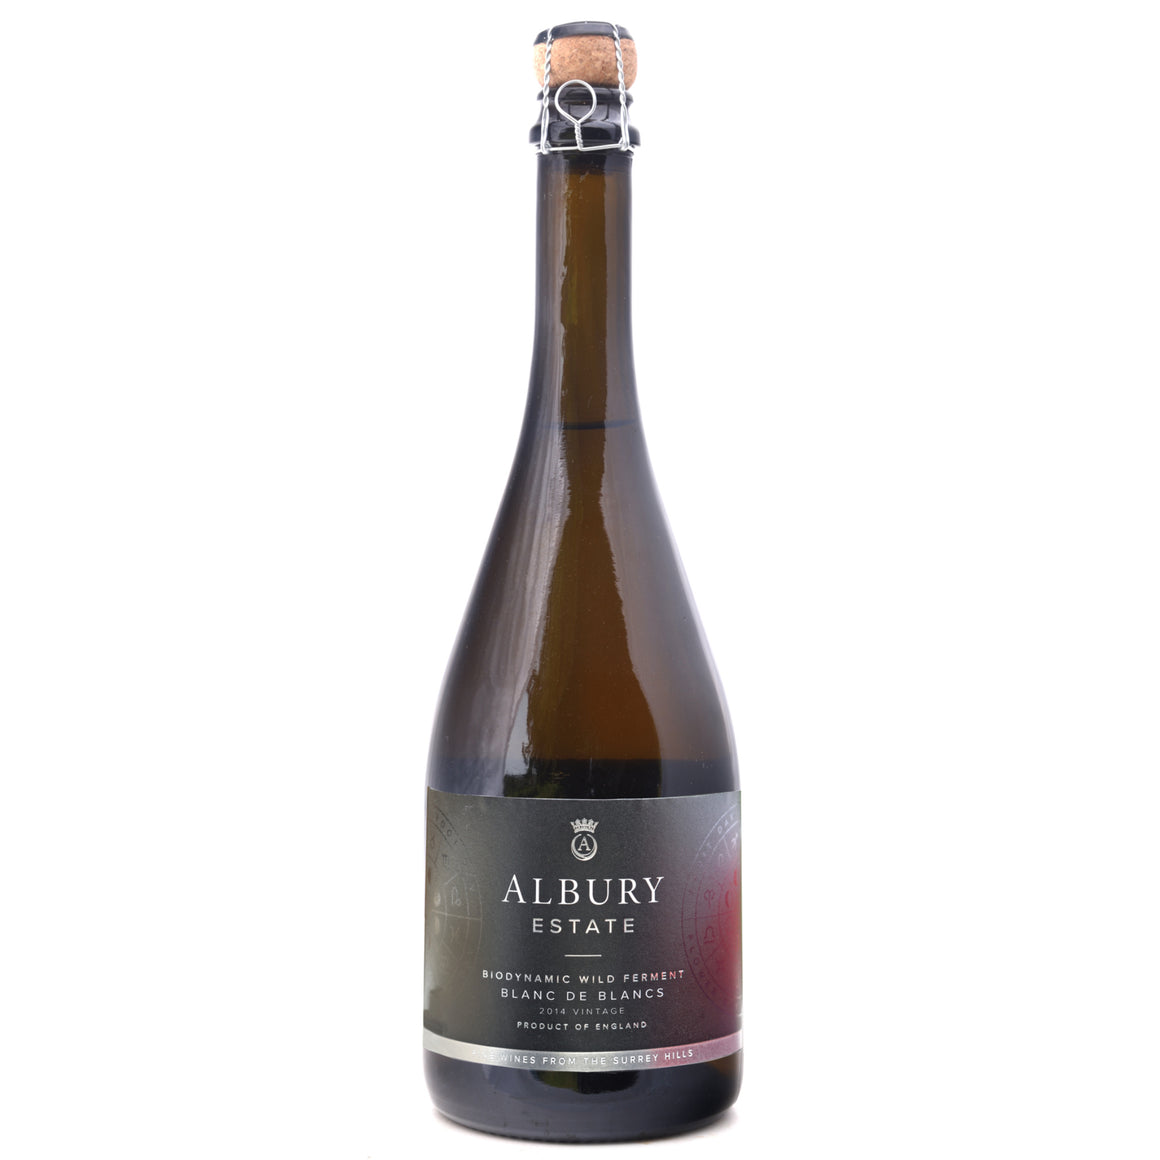 Albury Estate Biodynamic Wild Ferment 2014 'as seen on Countryfile'!